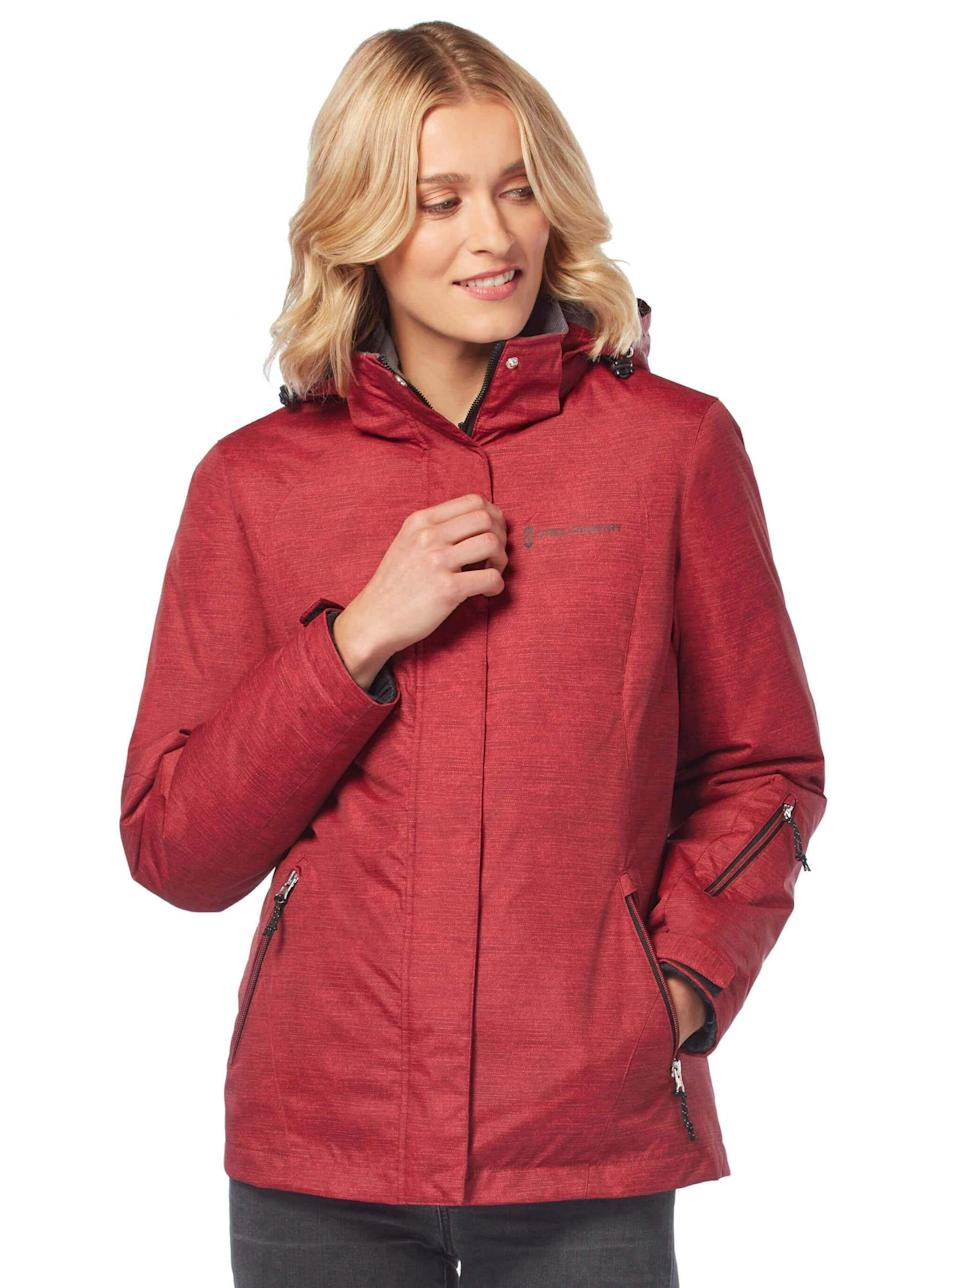 """<p><strong>Free Country</strong></p><p>freecountry.com</p><p><strong>$59.99</strong></p><p><a href=""""https://freecountry.com/products/womens-trailblazing-3-in-1-systems-jacket"""" rel=""""nofollow noopener"""" target=""""_blank"""" data-ylk=""""slk:Shop Now"""" class=""""link rapid-noclick-resp"""">Shop Now</a></p><p>Why buy one jacket when you can get three…in one? Wind- and water-resistant, this comes with an inner and outer layer that you can remove, along with the hood. </p>"""